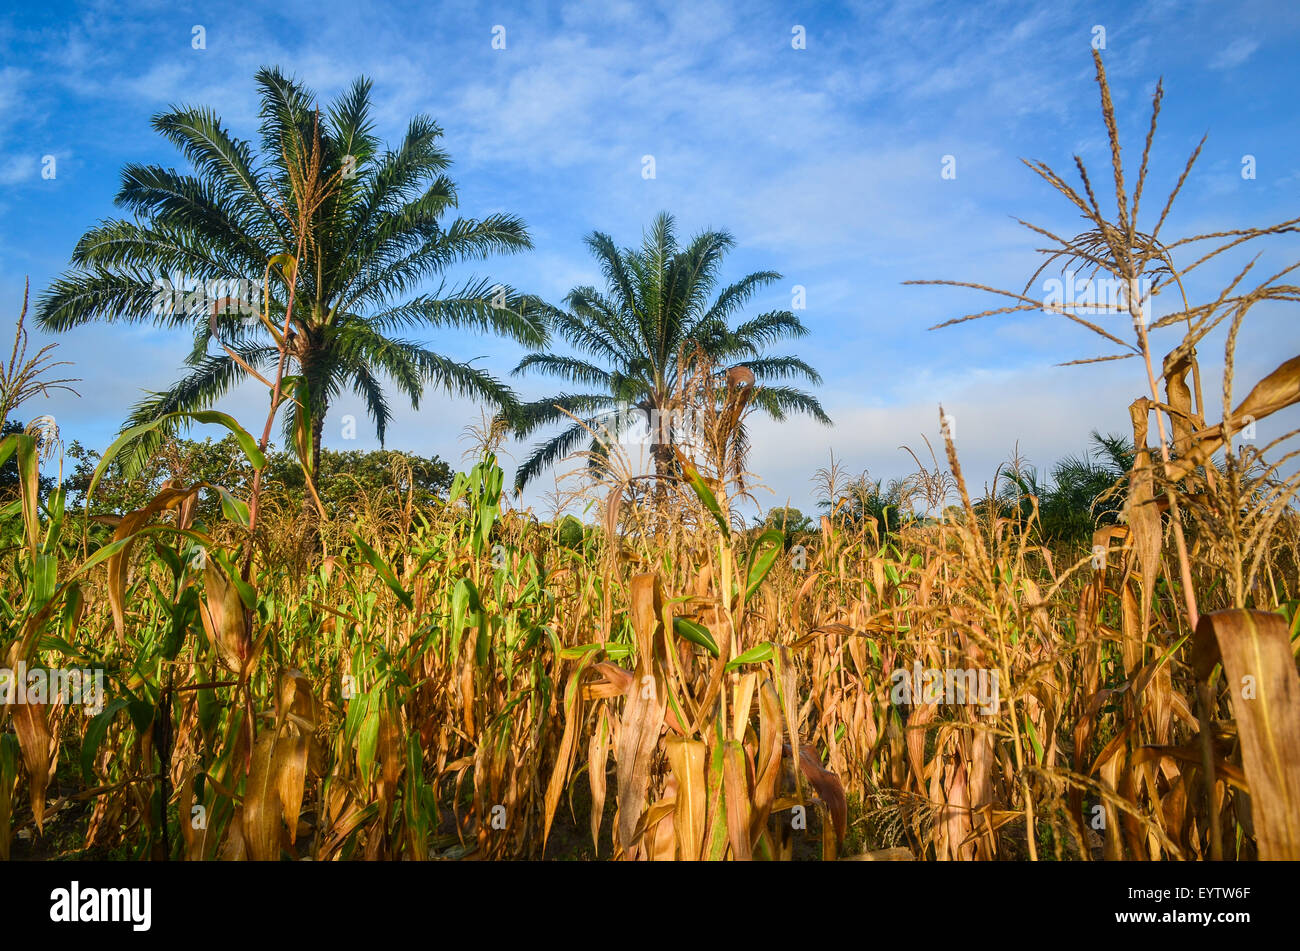 Corn (maize) fields in the Cuanza Sul province of Angola at sunrise, and palm trees in between - Stock Image